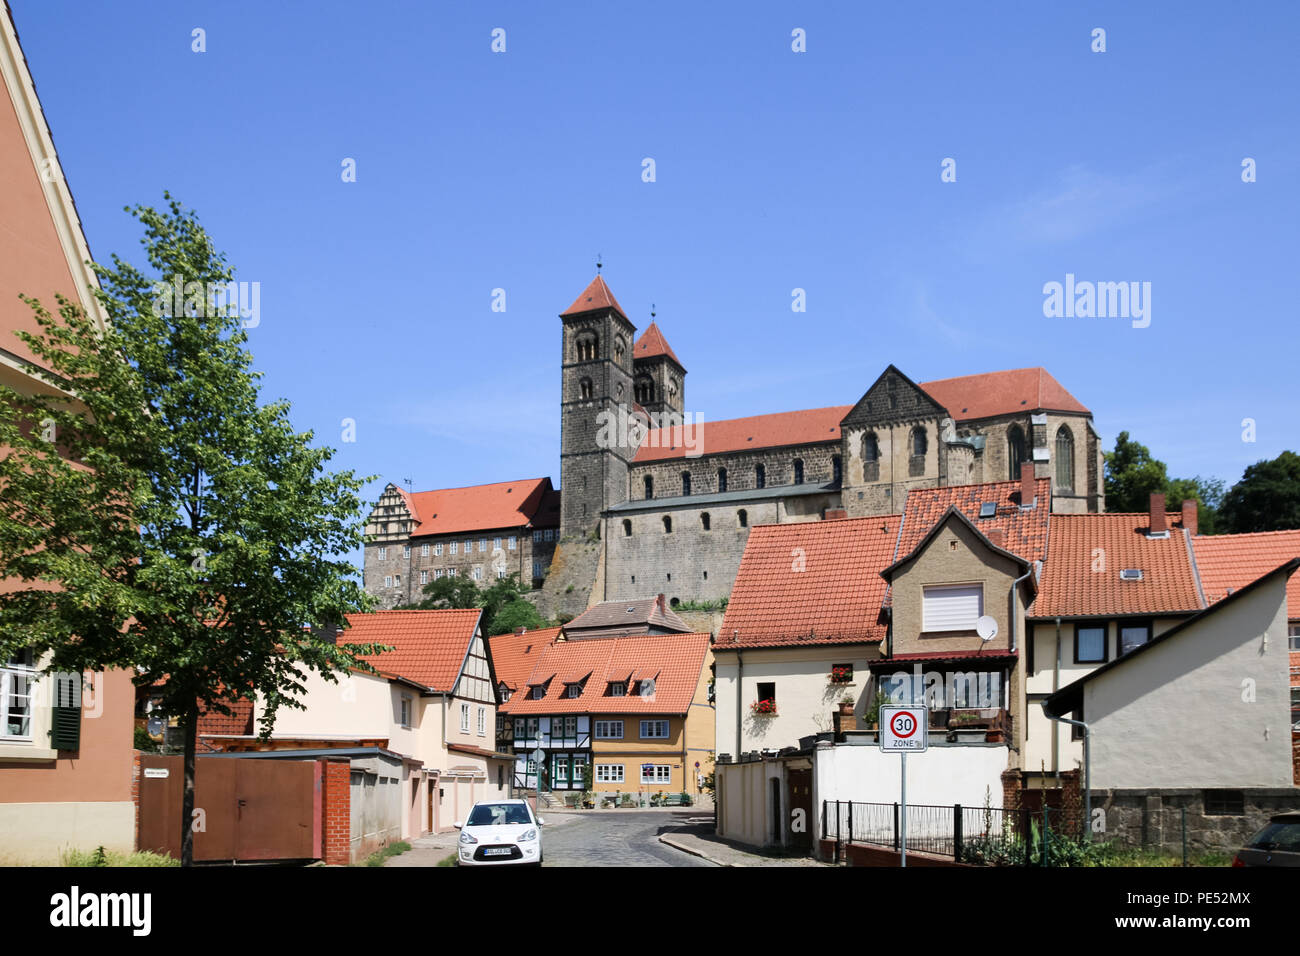 Magdeburg, Germany - June 6, 2018: View of the collegiate church St. Servatius in the world heritage city Quedlinburg, Germany. - Stock Image